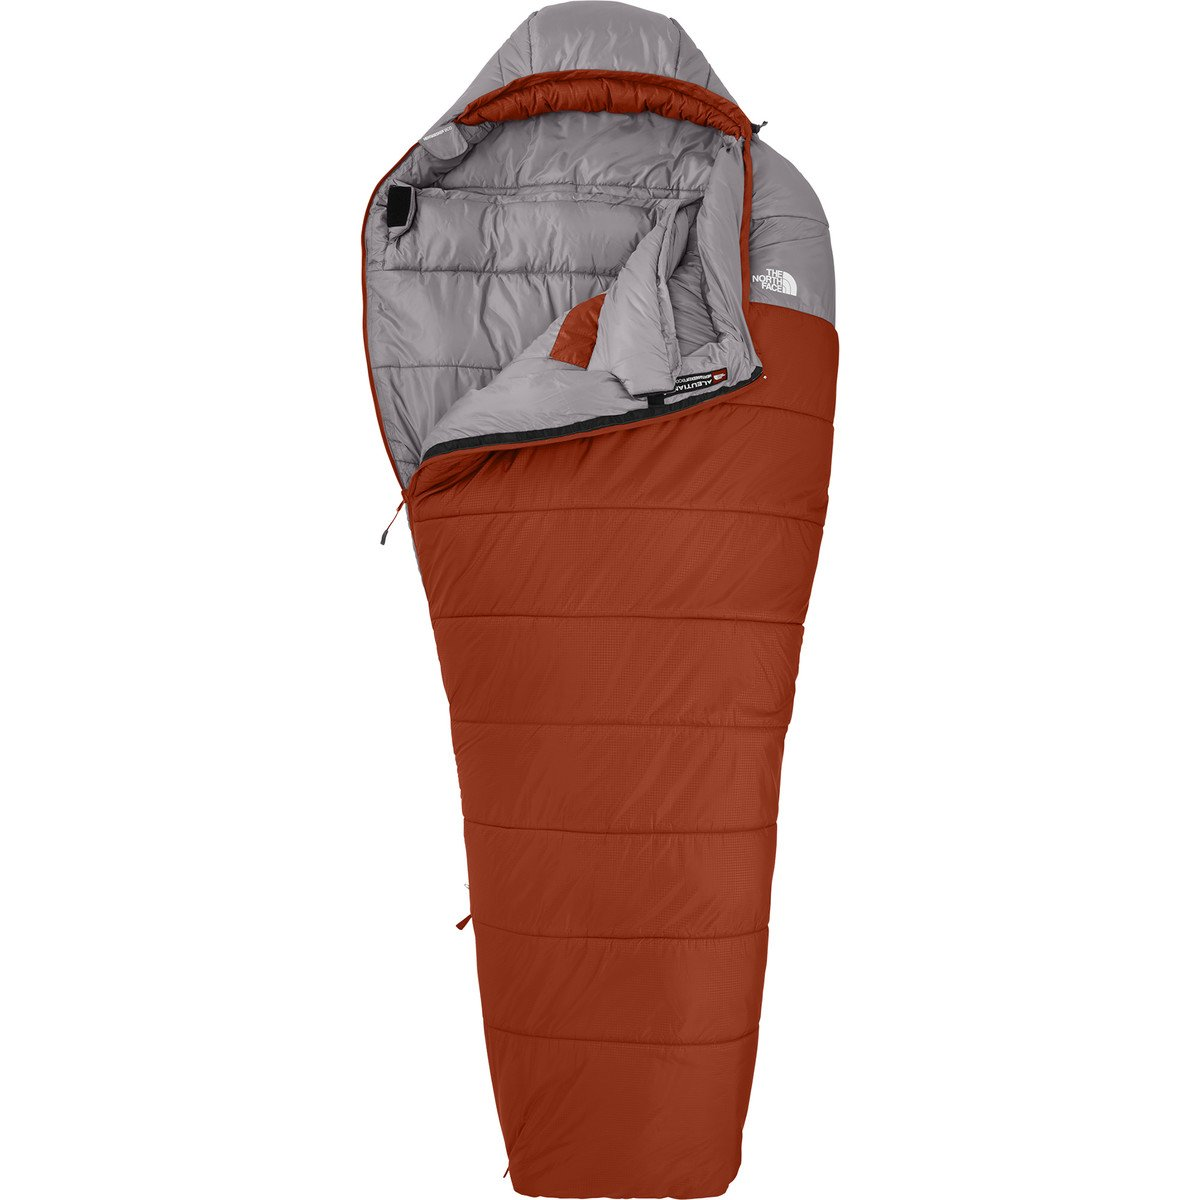 The North Face Aleutian -20F Long by The North Face B00US3N0QU